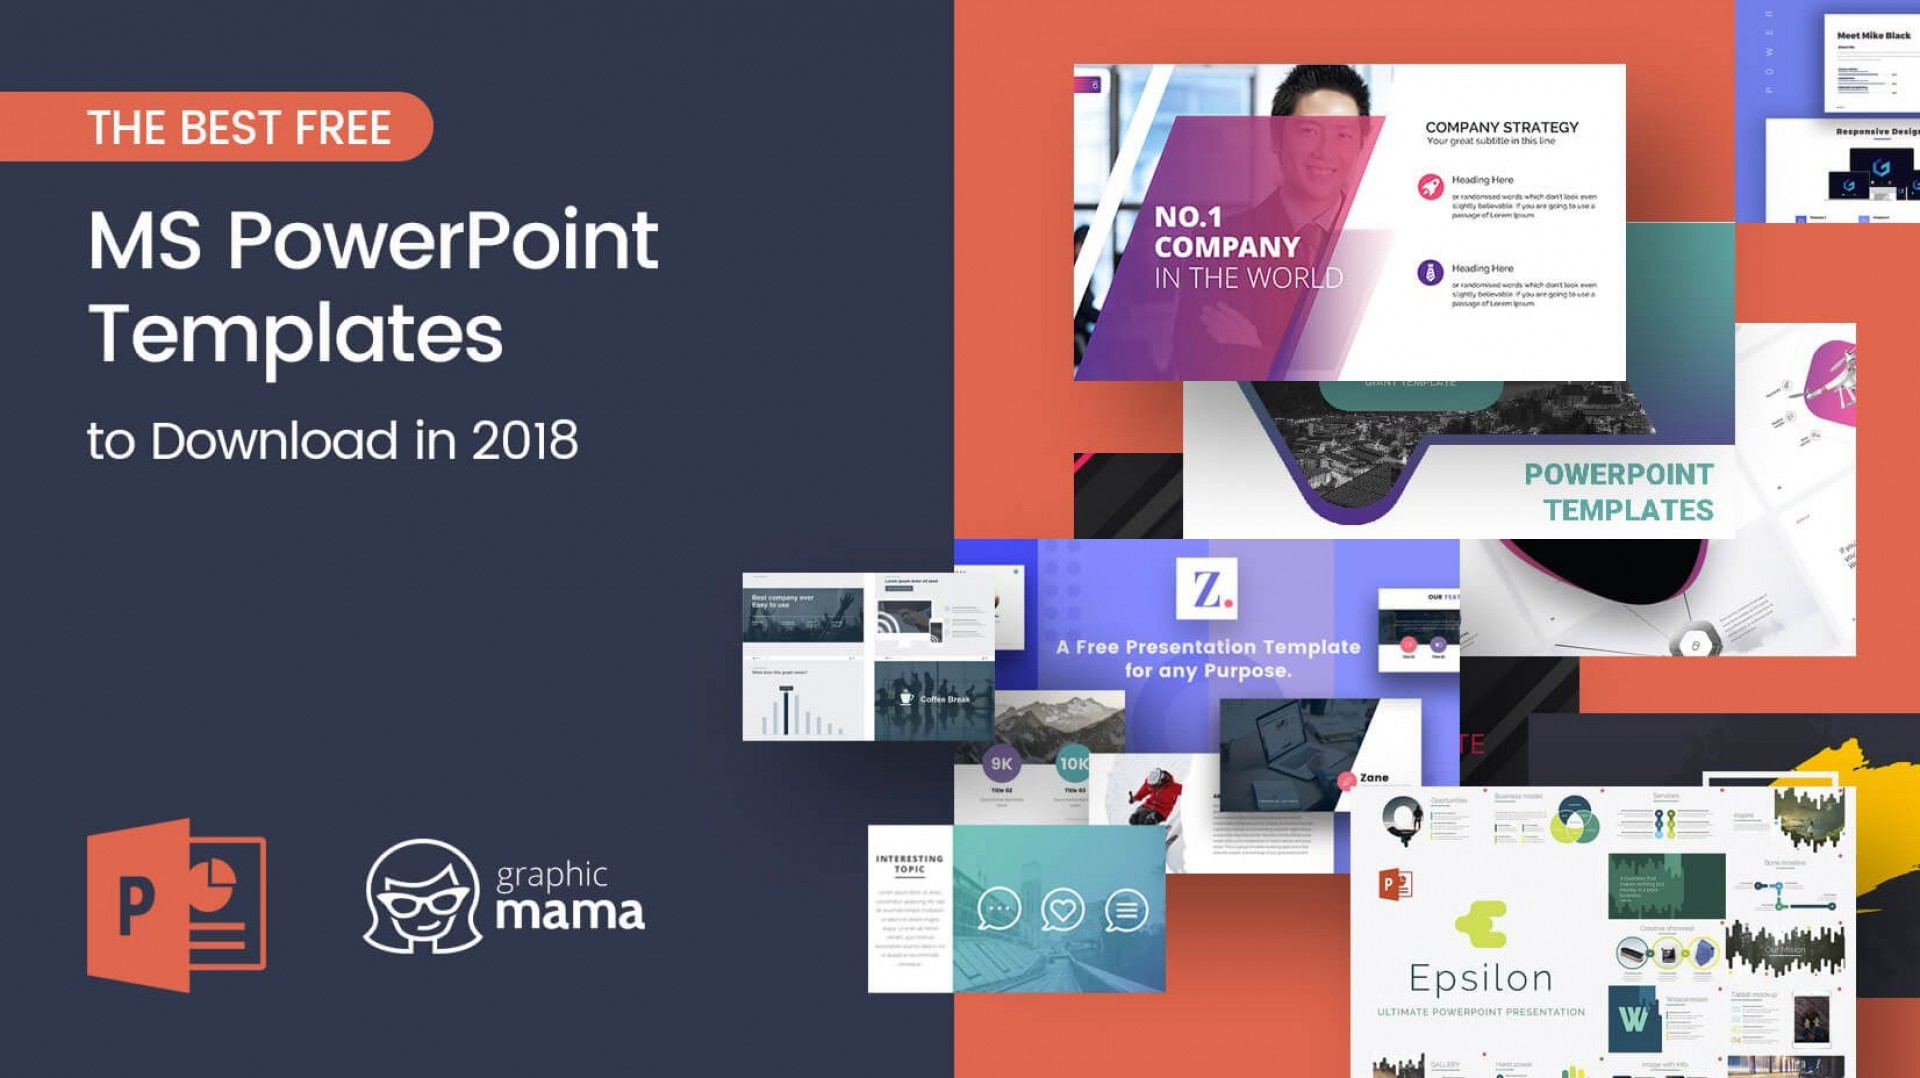 009 Unbelievable Powerpoint Presentation Format Free Download Image  Influencer Template Company Ppt Sample1920